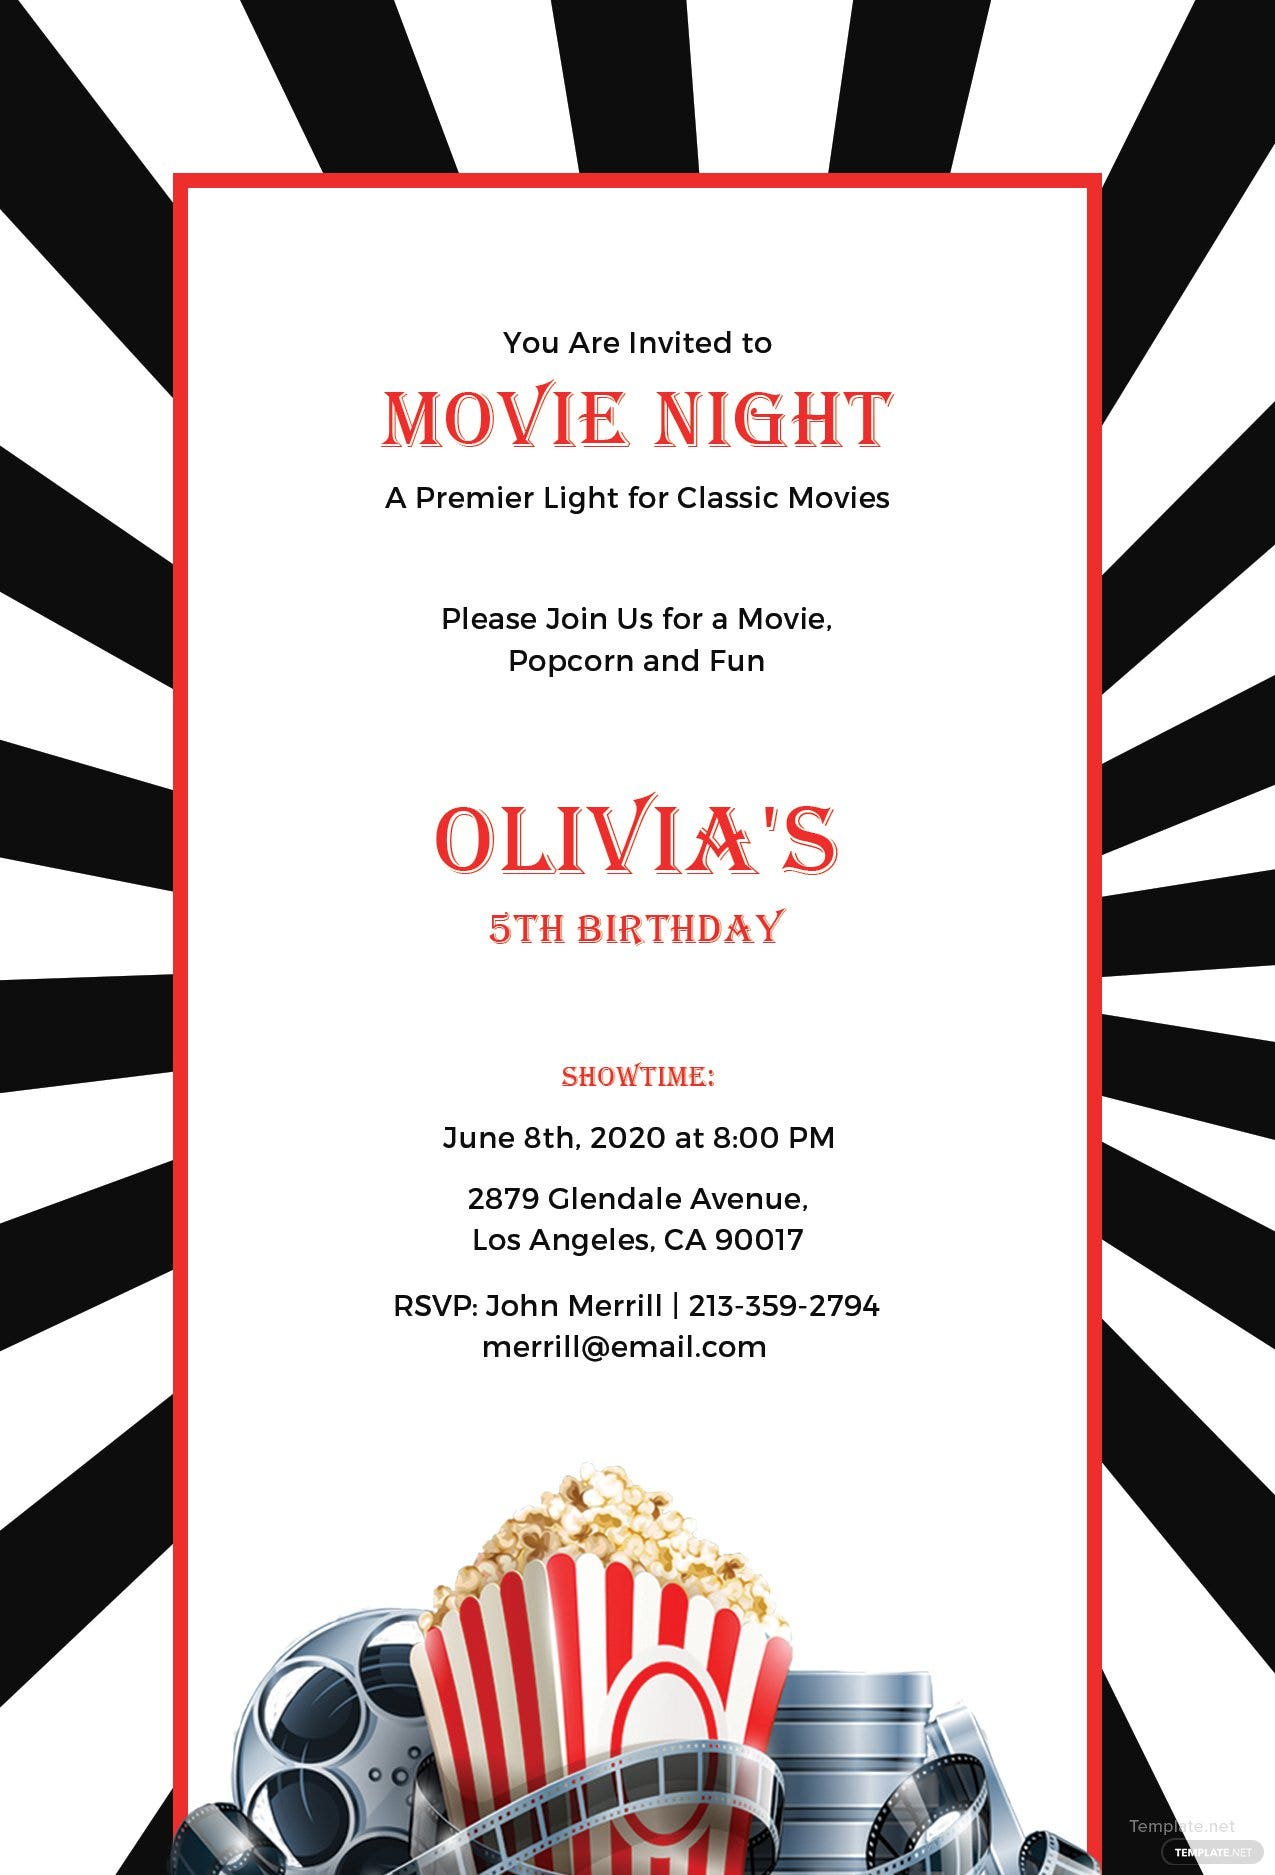 Free Movie Night Invitation Template in PSD, MS Word, Publisher ...